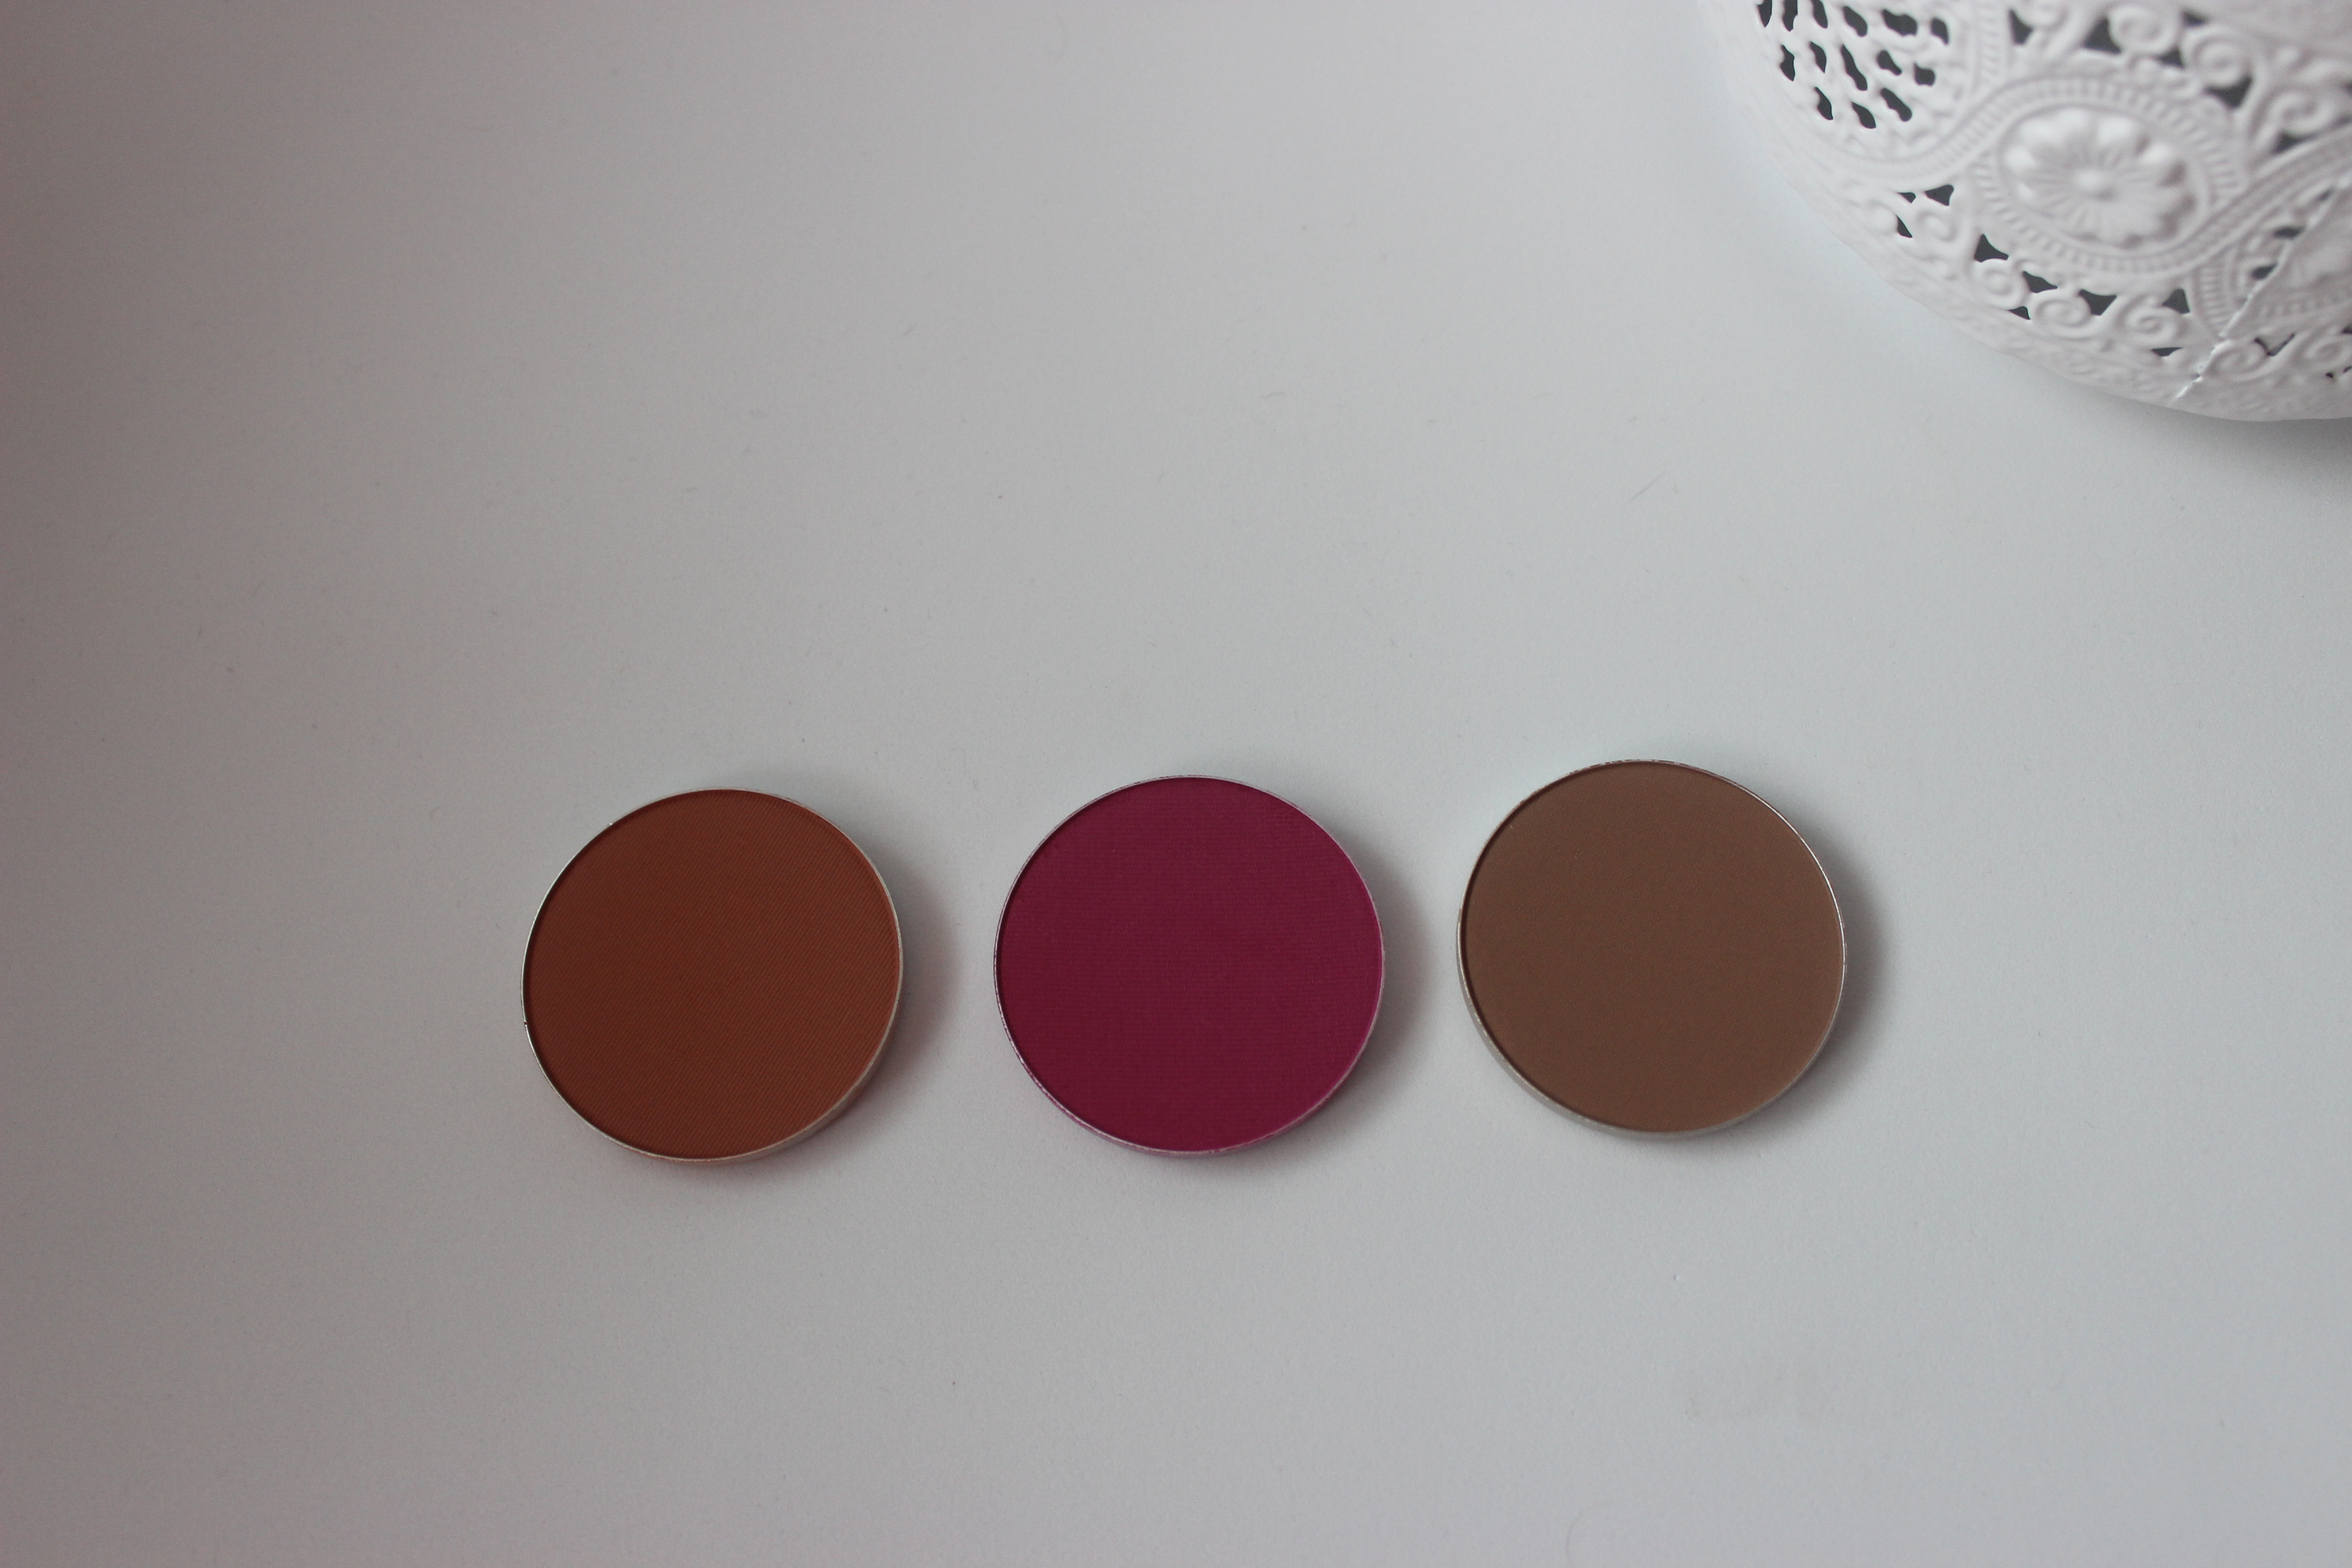 As you can see, Coppertone is a matte orangey shade that is described ...